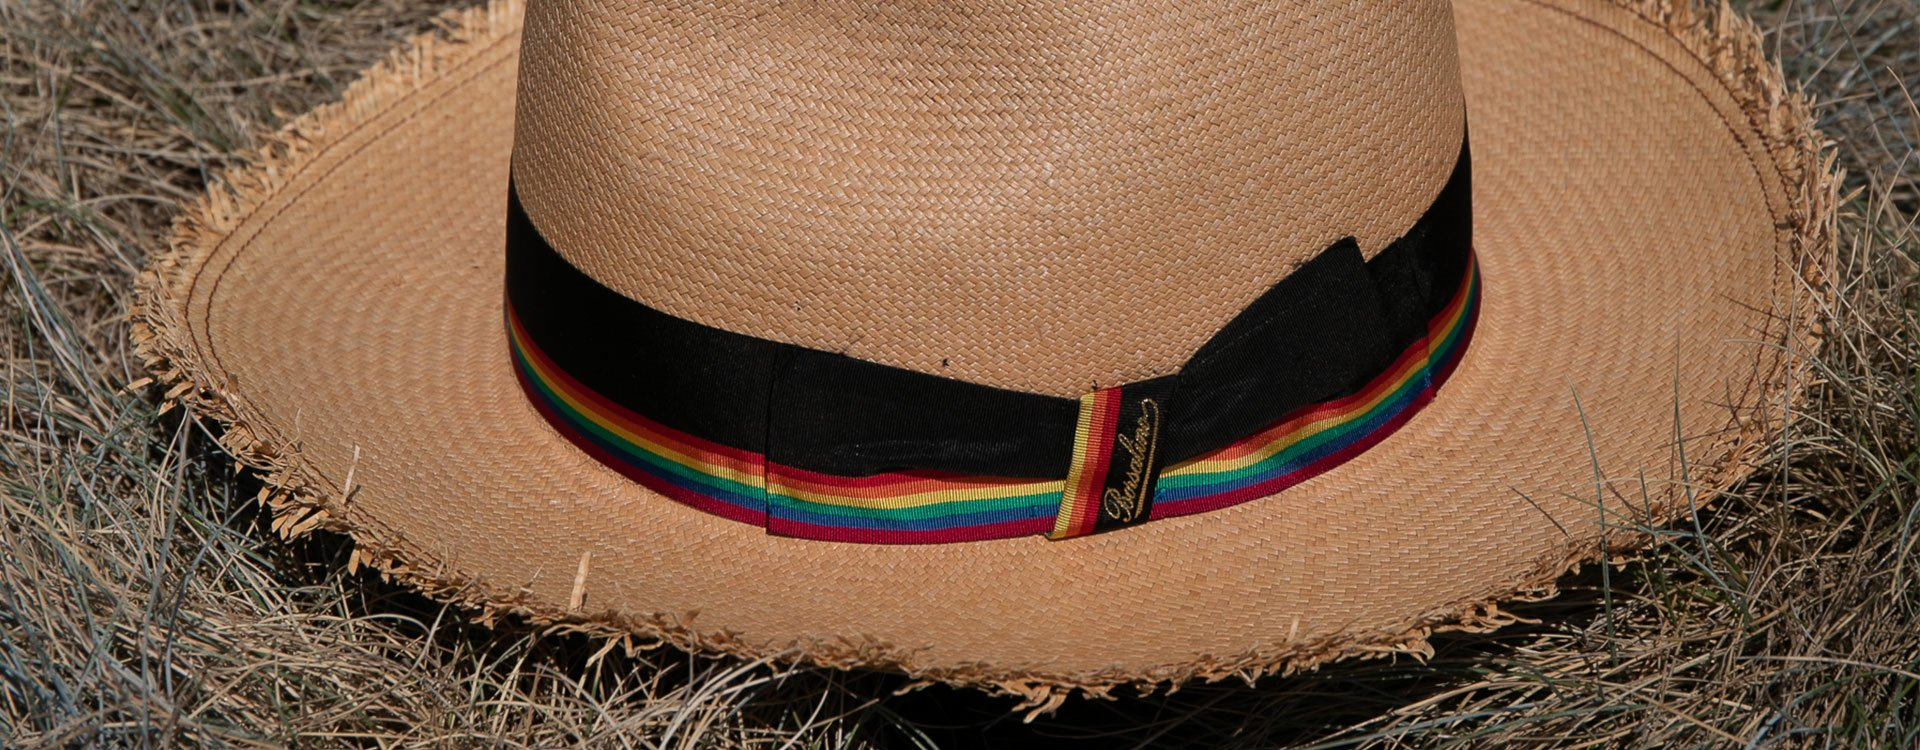 Discover the Borsalino capsule collection dedicated to Pride Month 2021